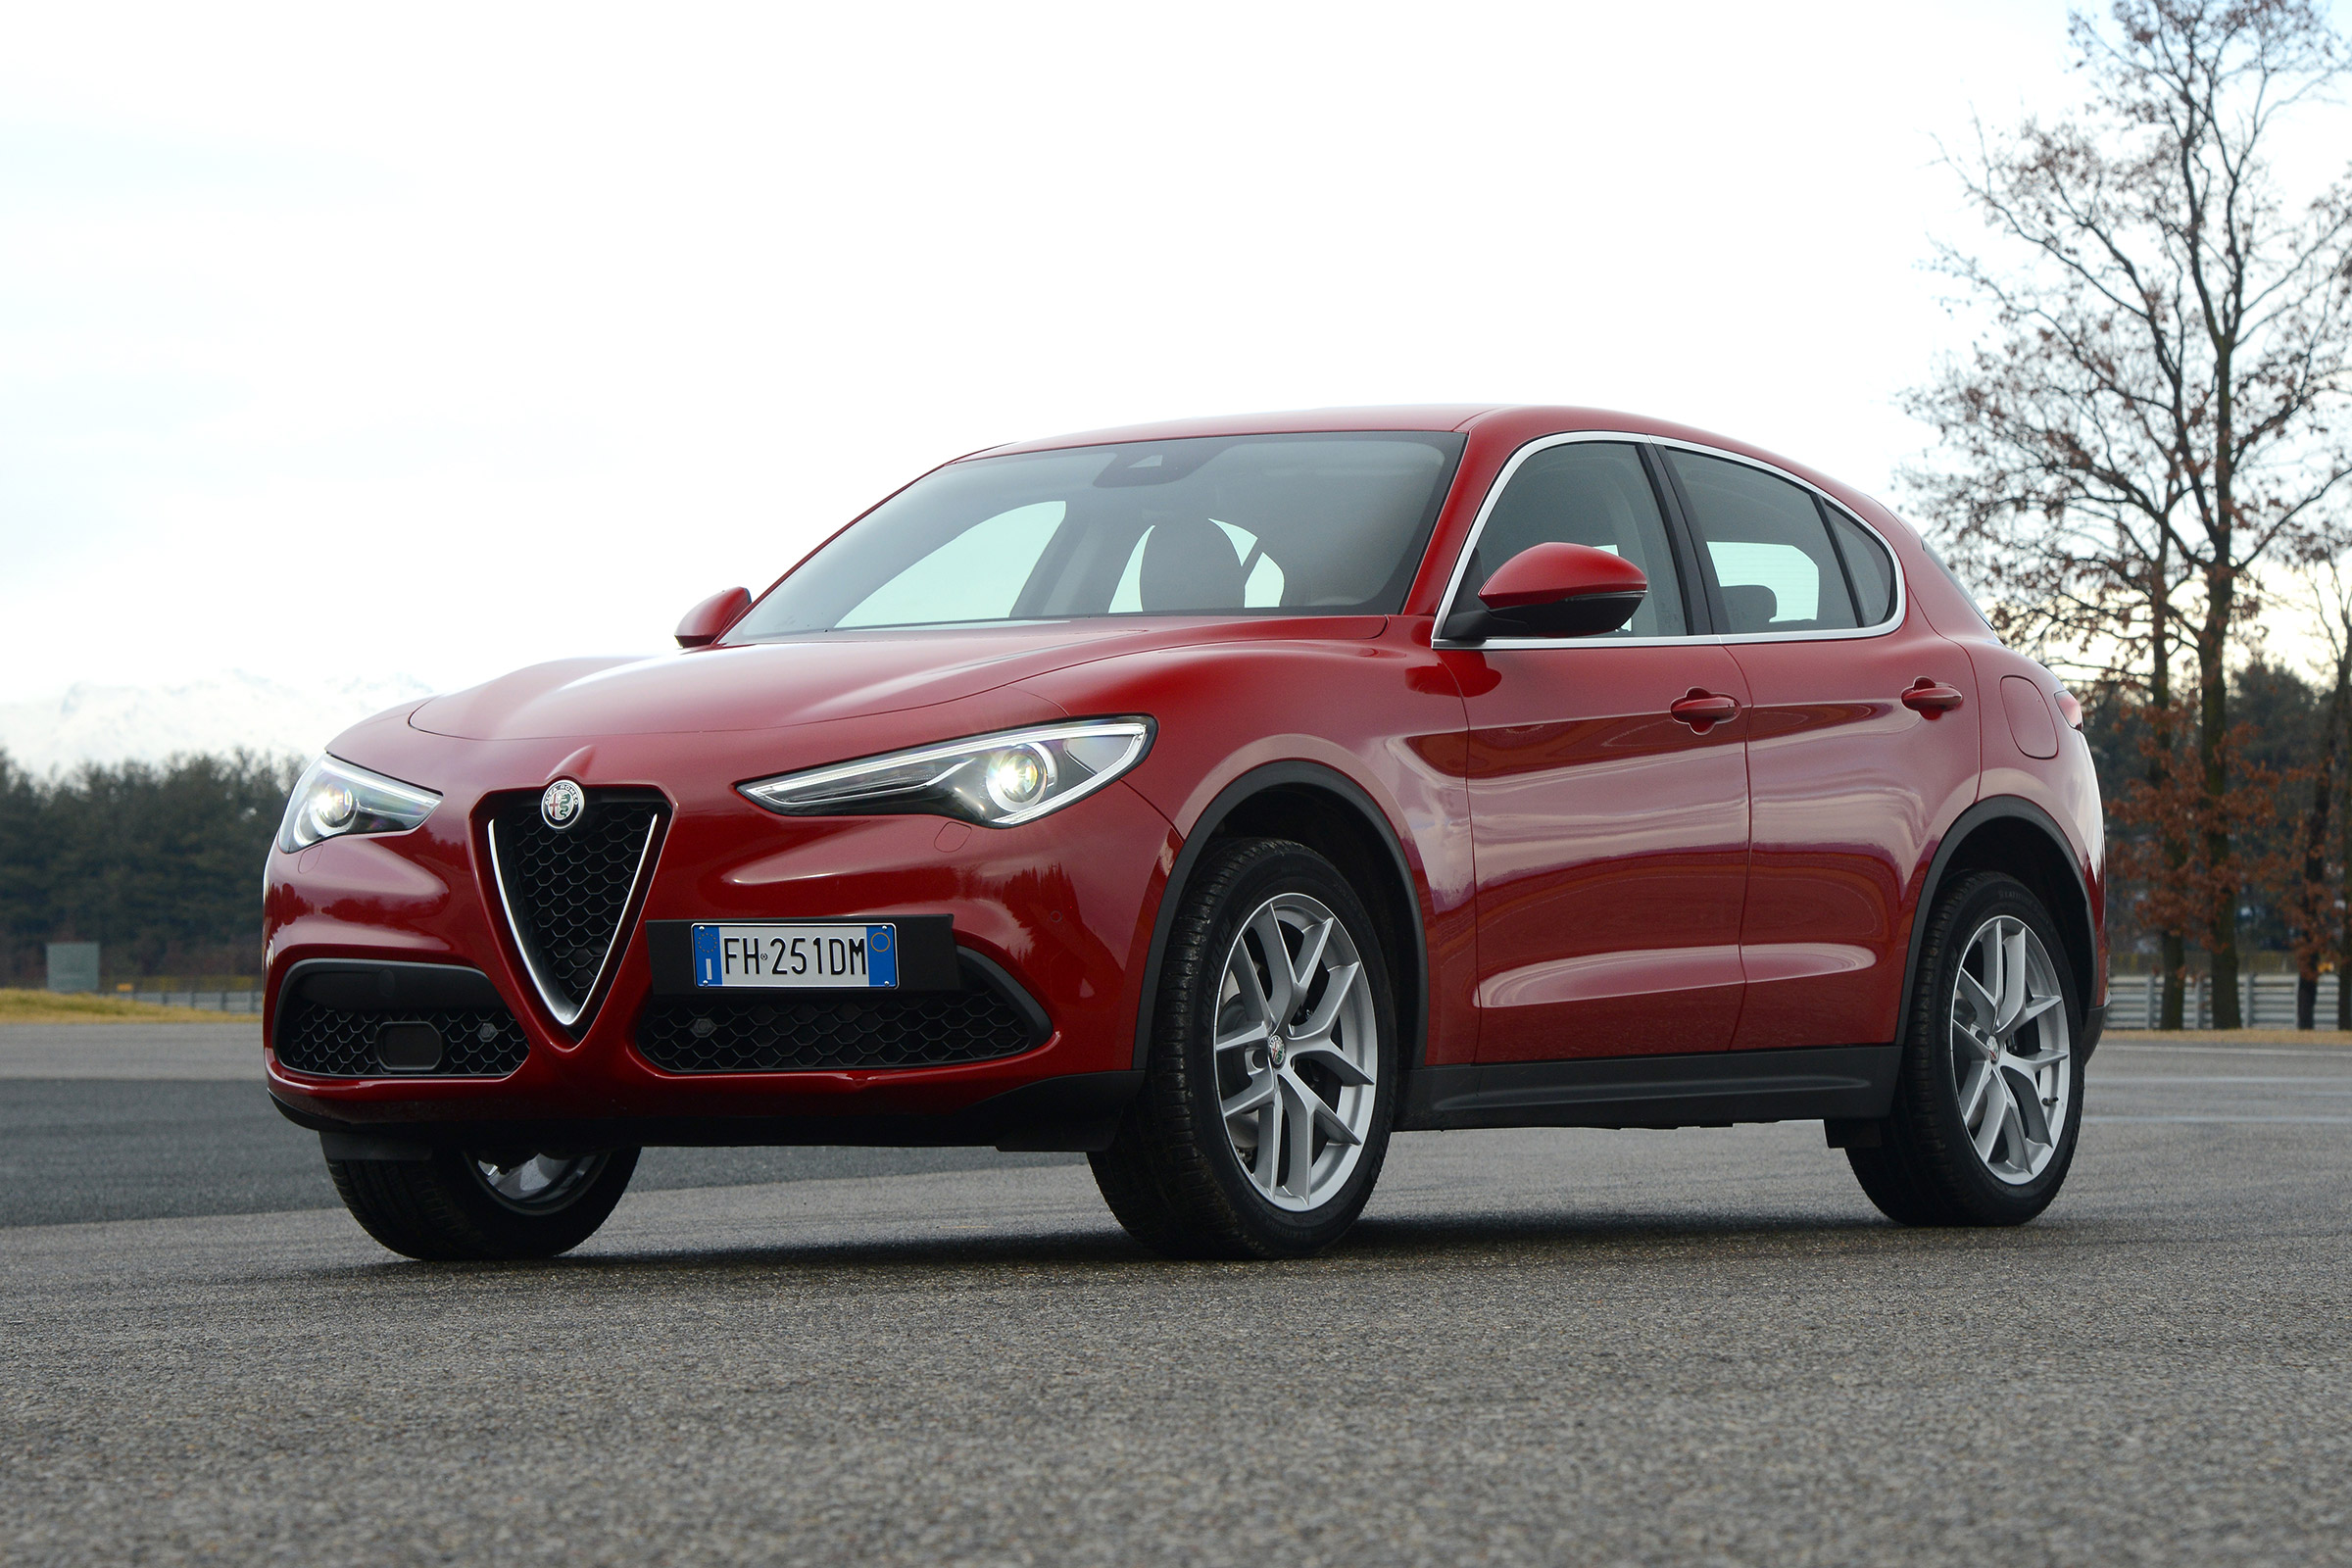 2017 Alfa Romeo Stelvio Exterior Front And Side (Photo 2 of 23)